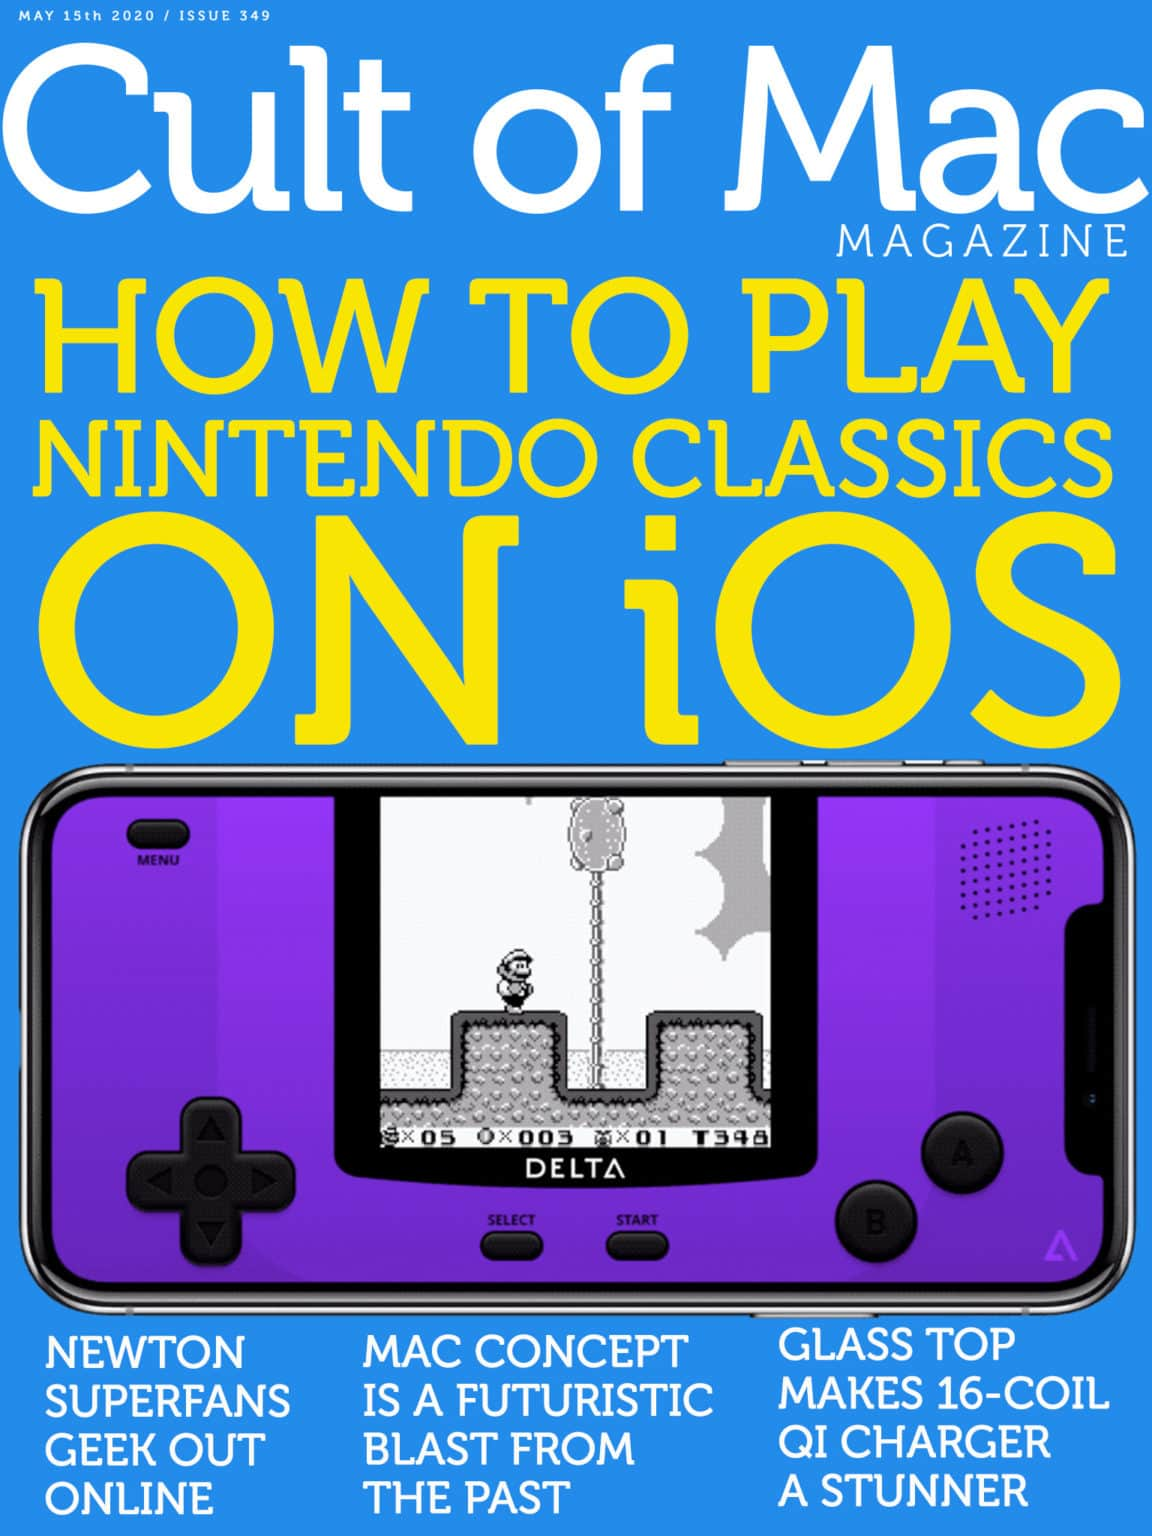 Get your game on! Find out how to play classic Nintendo games on iOS devices.